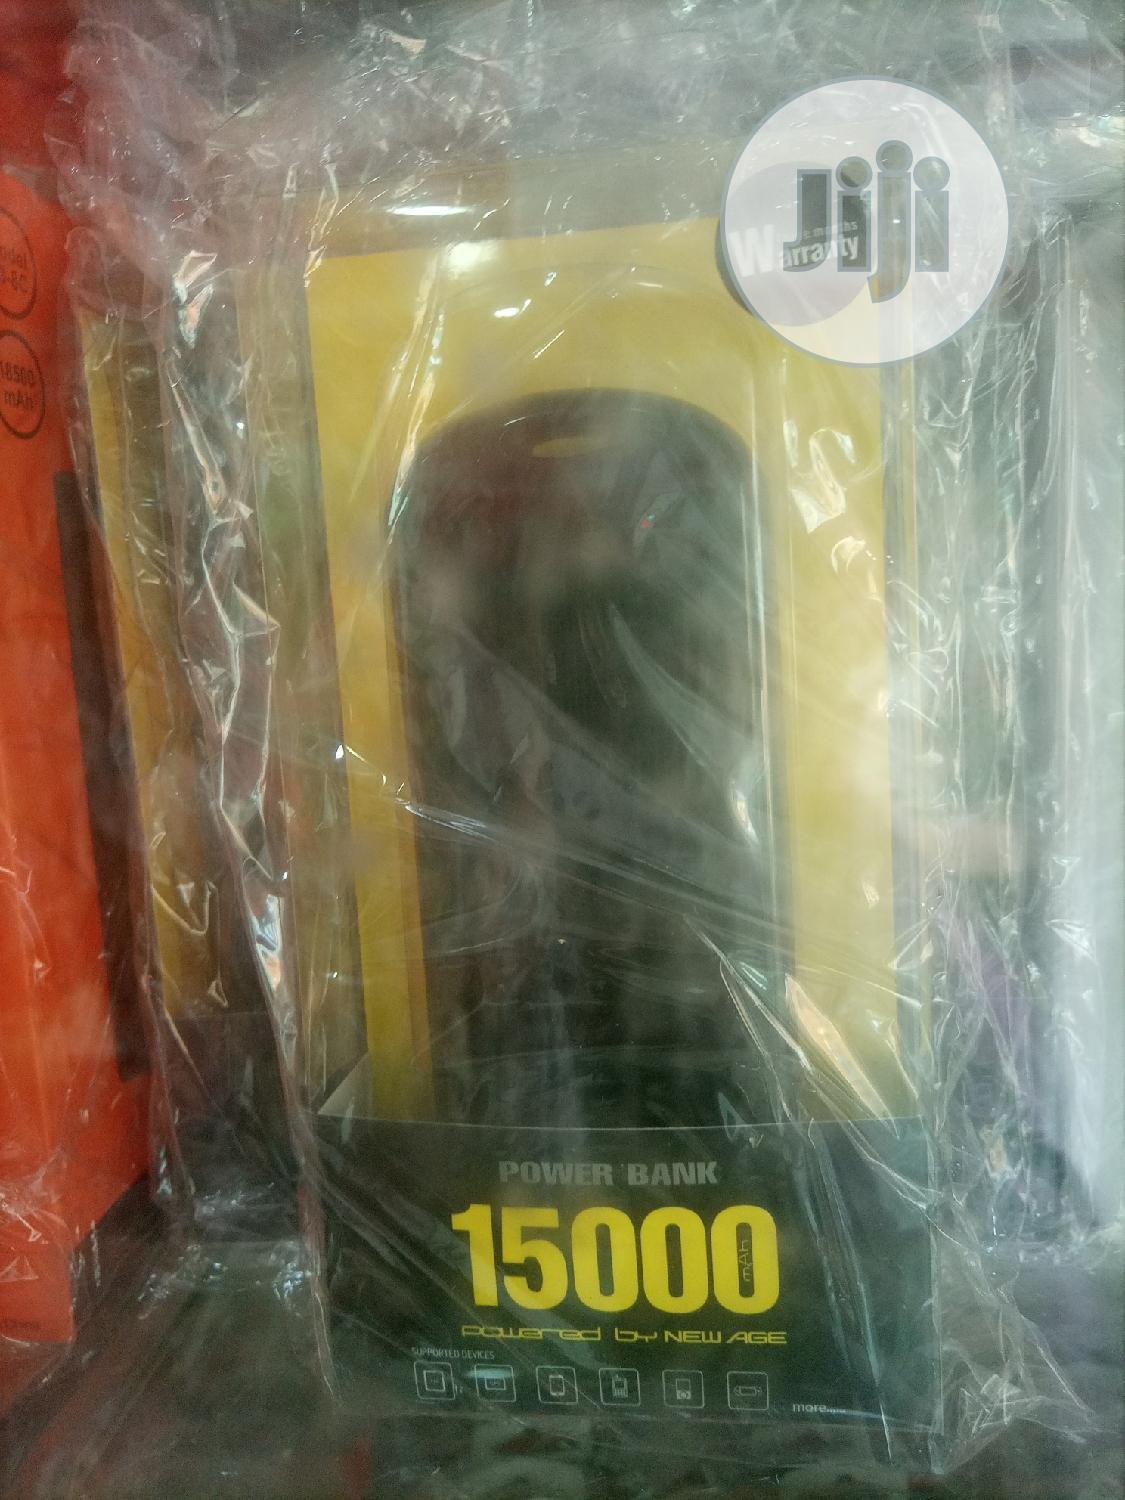 15000mah New Age Power Bank   Accessories for Mobile Phones & Tablets for sale in Ikorodu, Lagos State, Nigeria